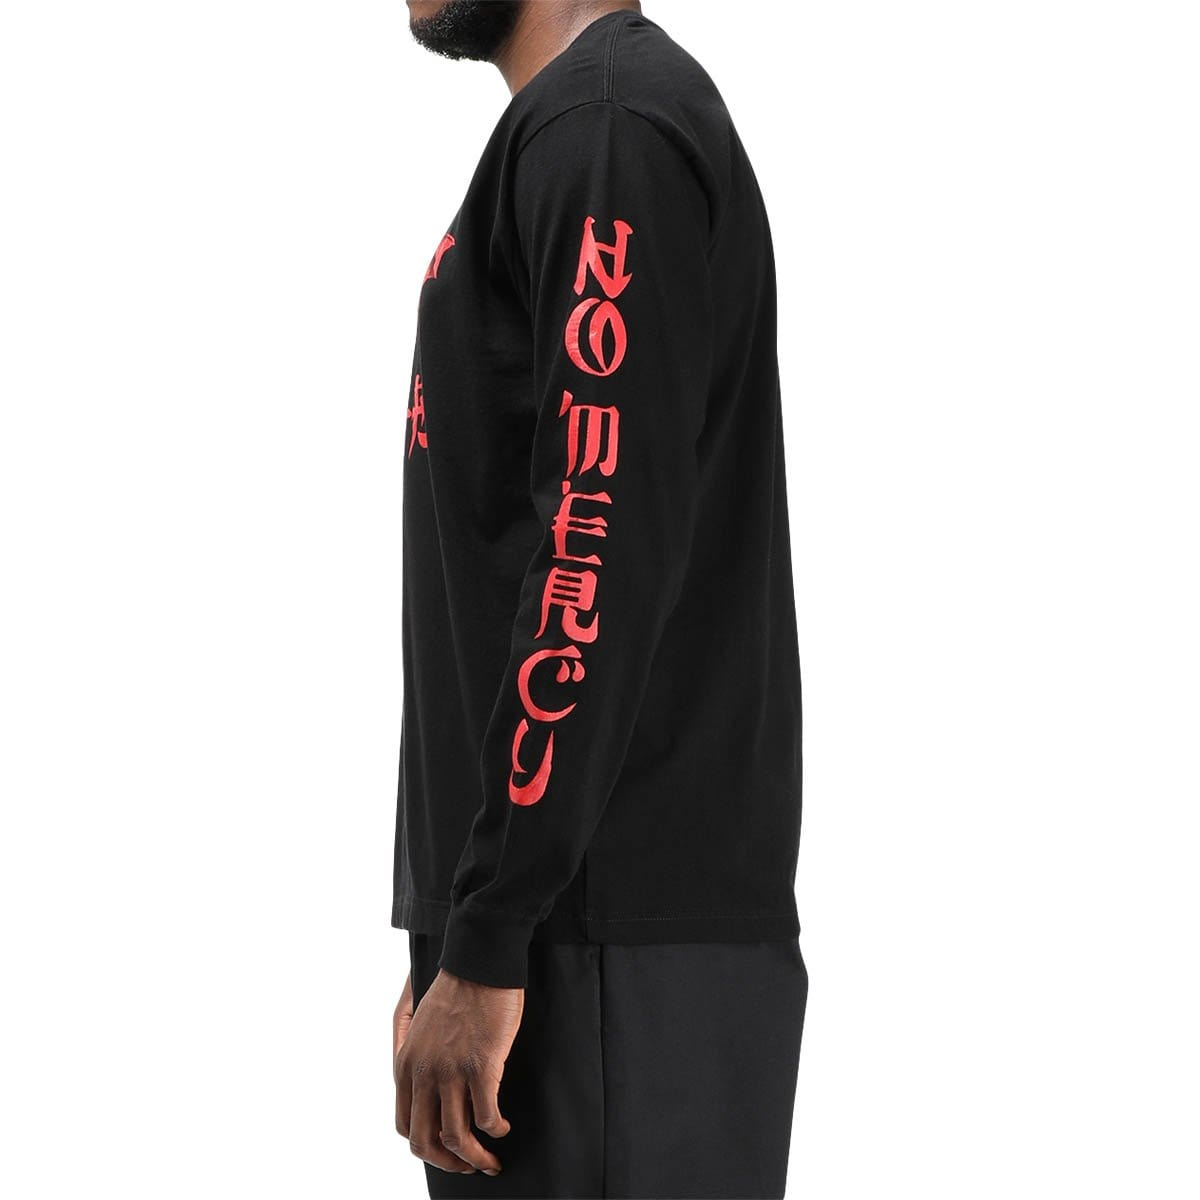 Neighborhood No Mercy-1 / C-Tee LS Black/Red